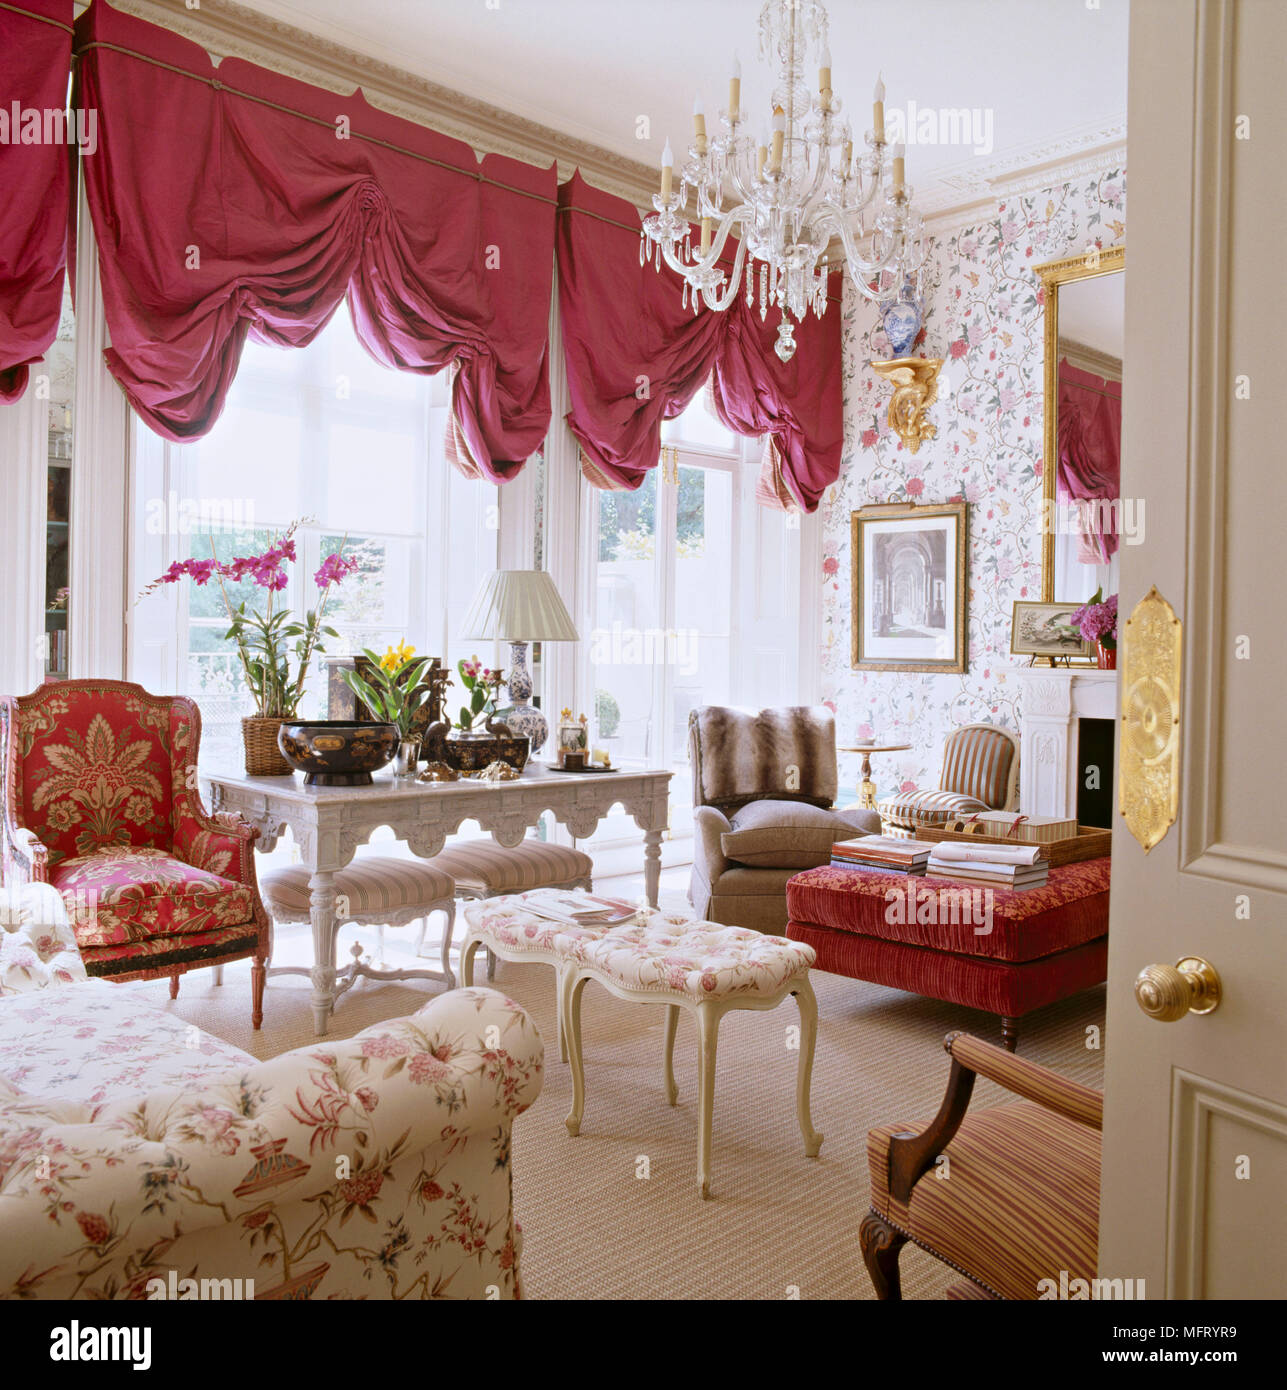 Sitting Room With Red Draped Curtains And Chendelier